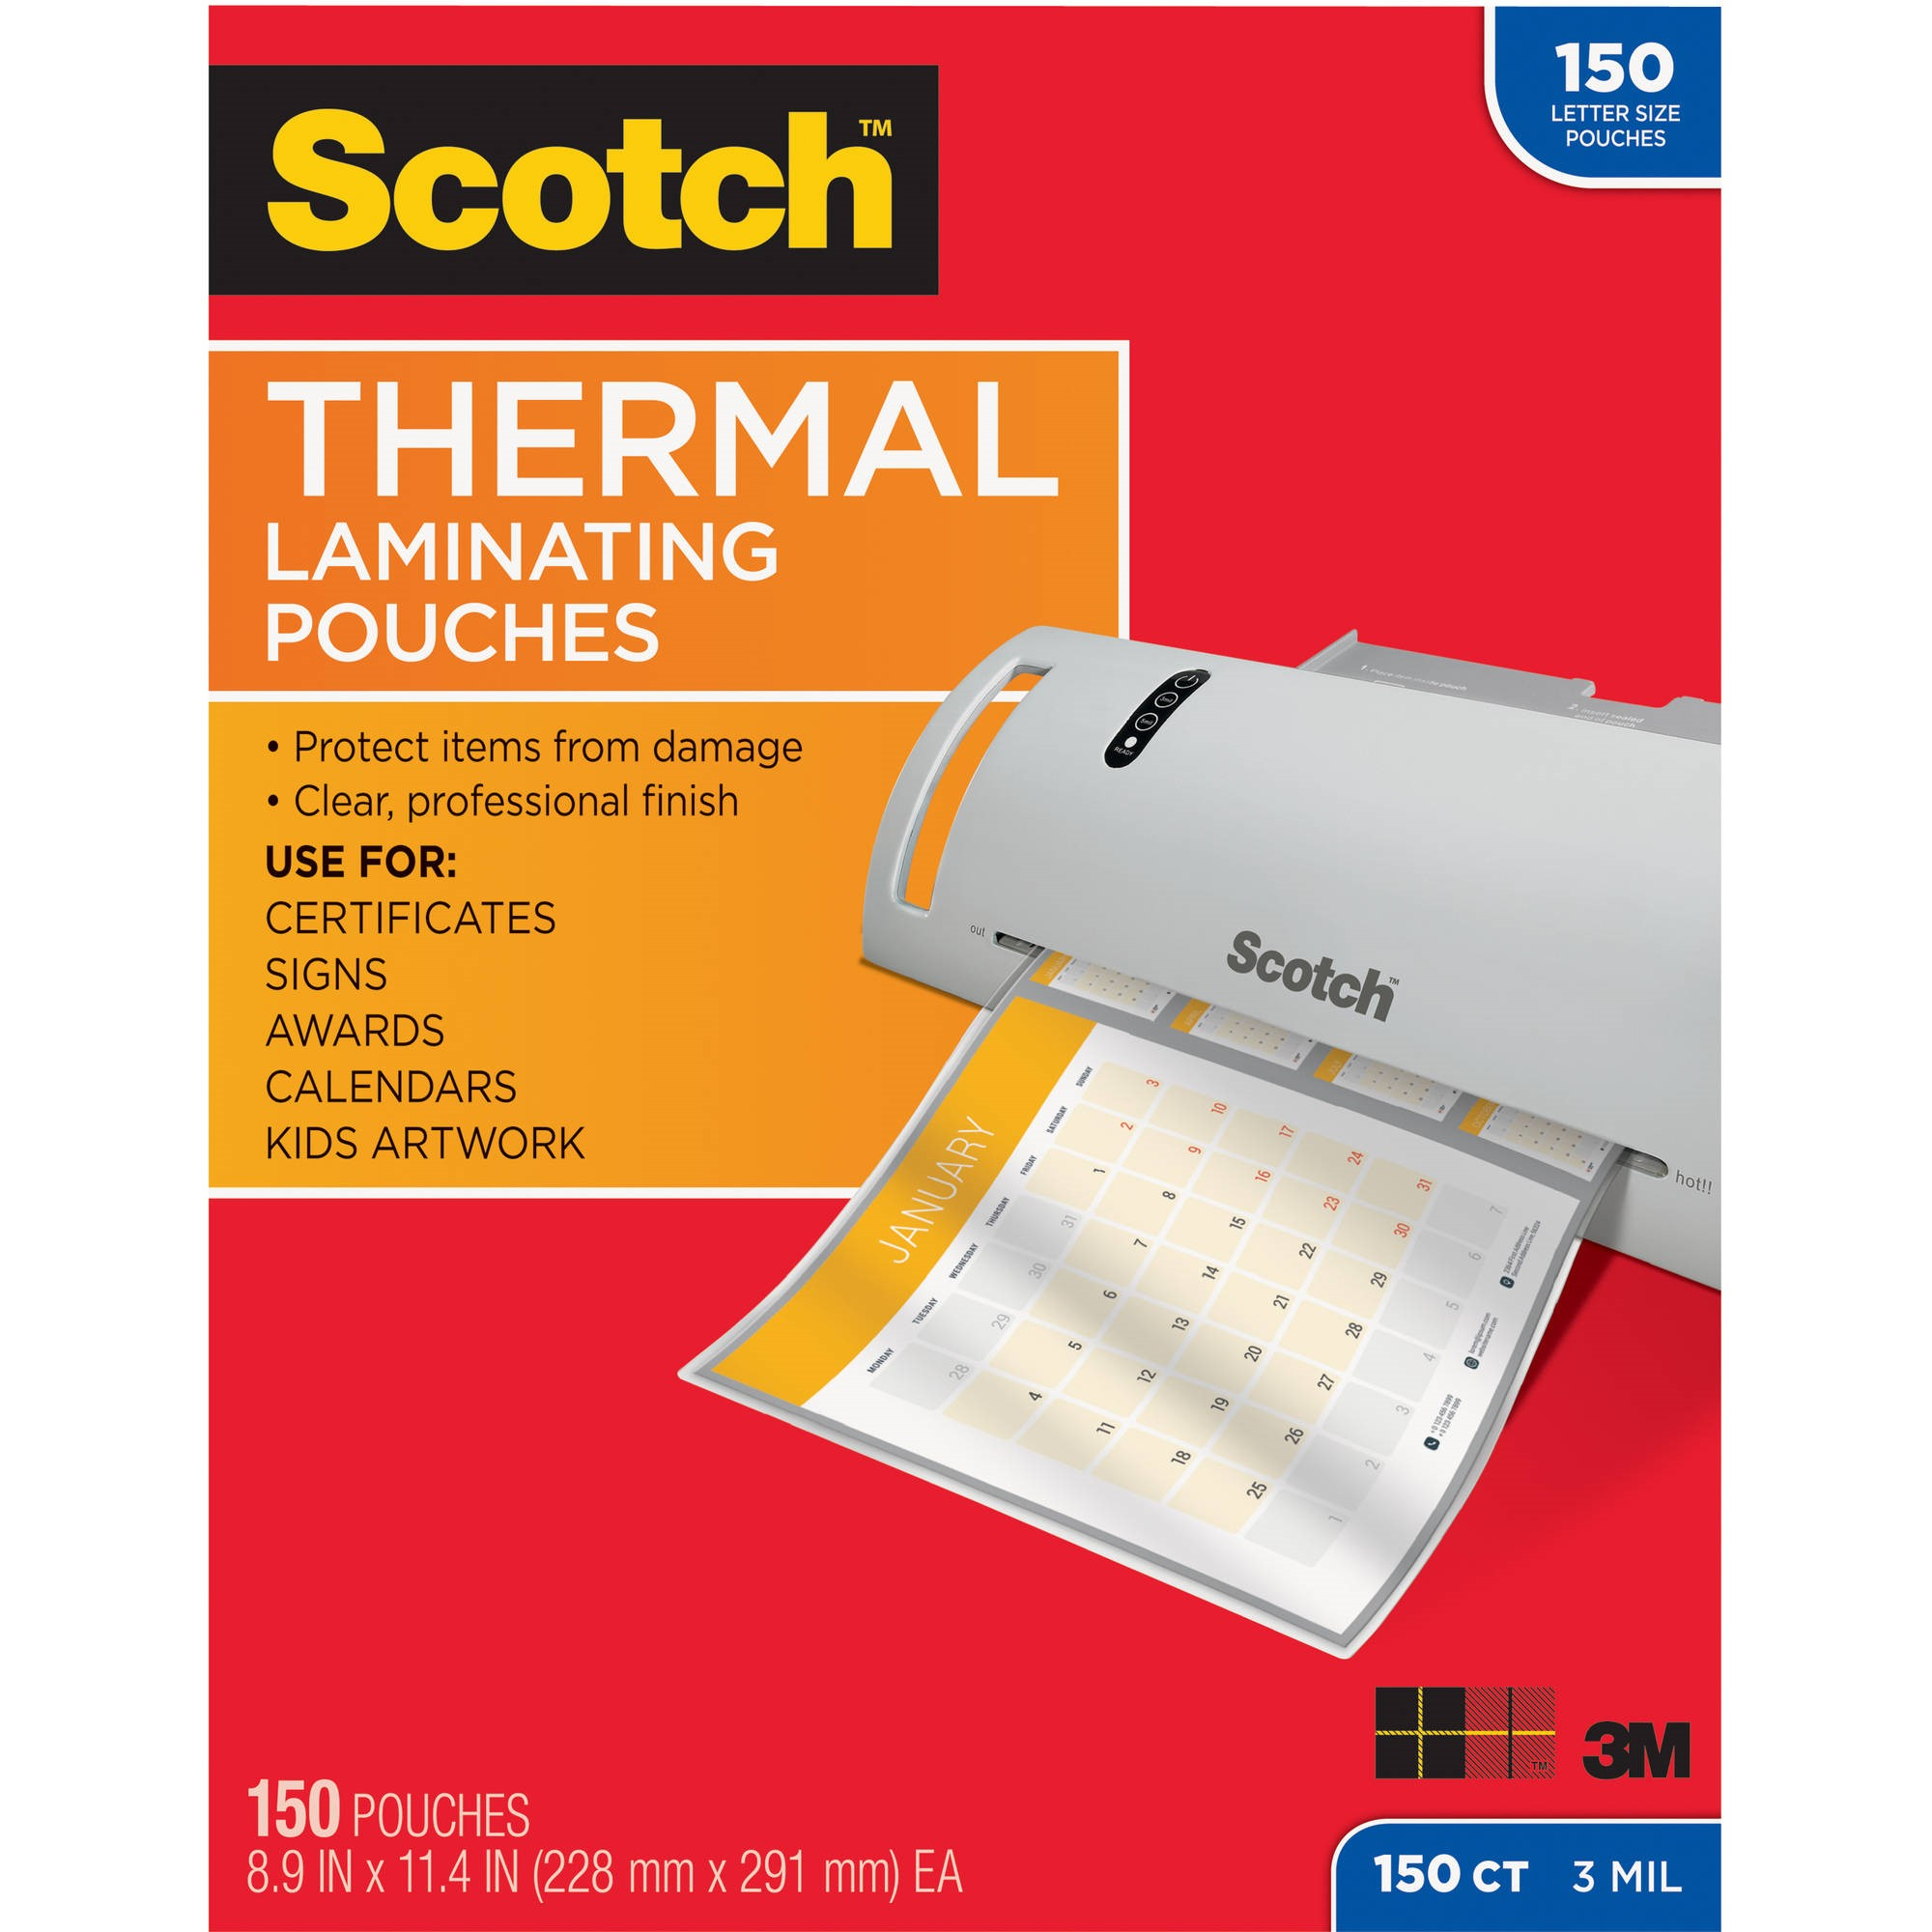 Scotch Thermal Laminating Pouches 150 pack, Letter Size, 9.5in 11.5in., 3mil Thickness, 150 Pouches per Pack